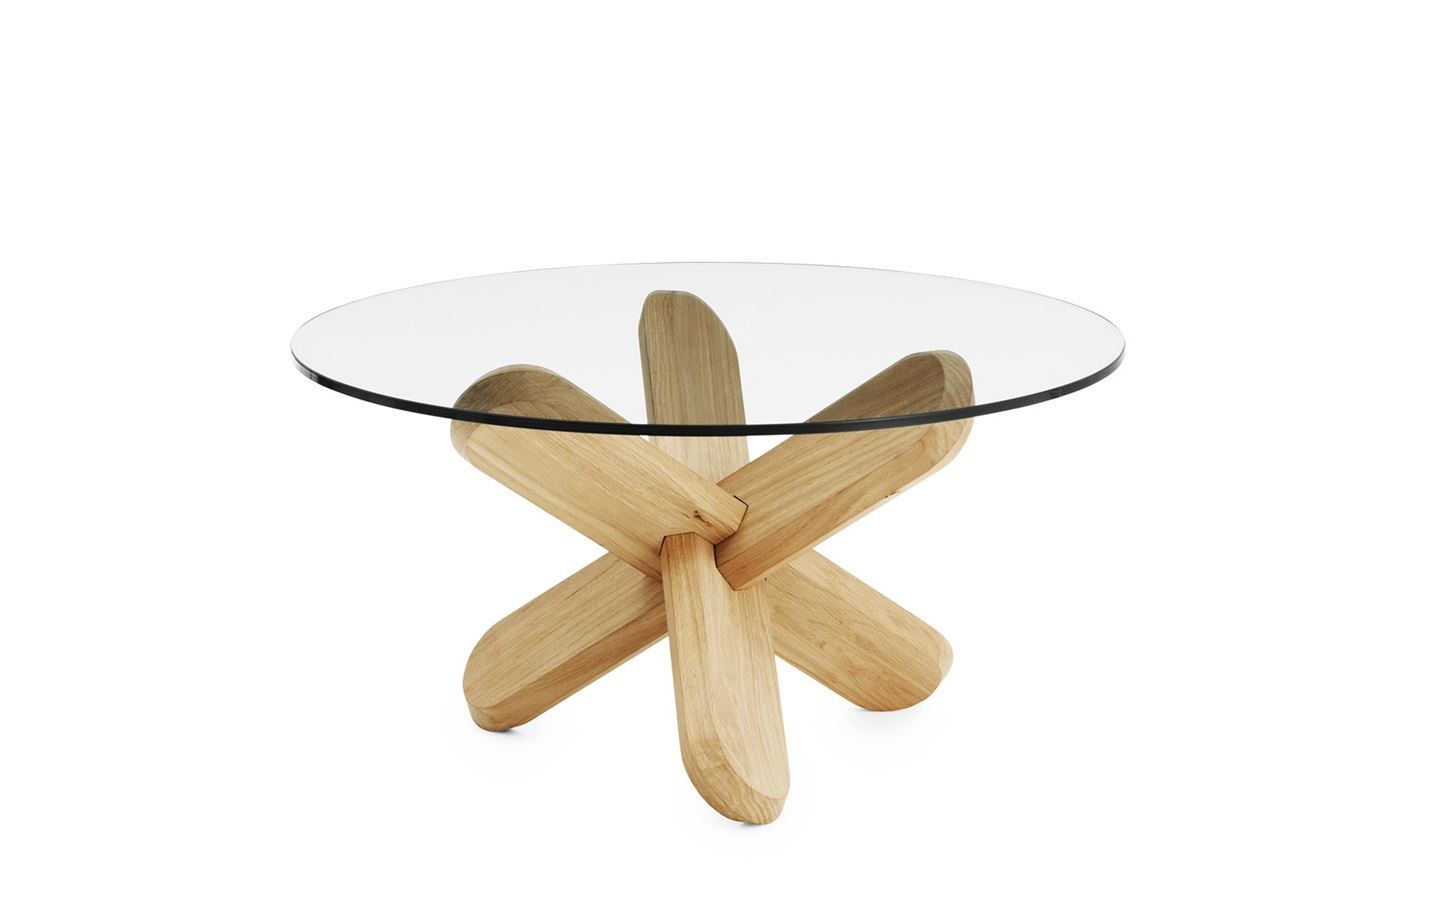 Ding Table A Scuptural Coffee Table In Transparent Glass And Oak